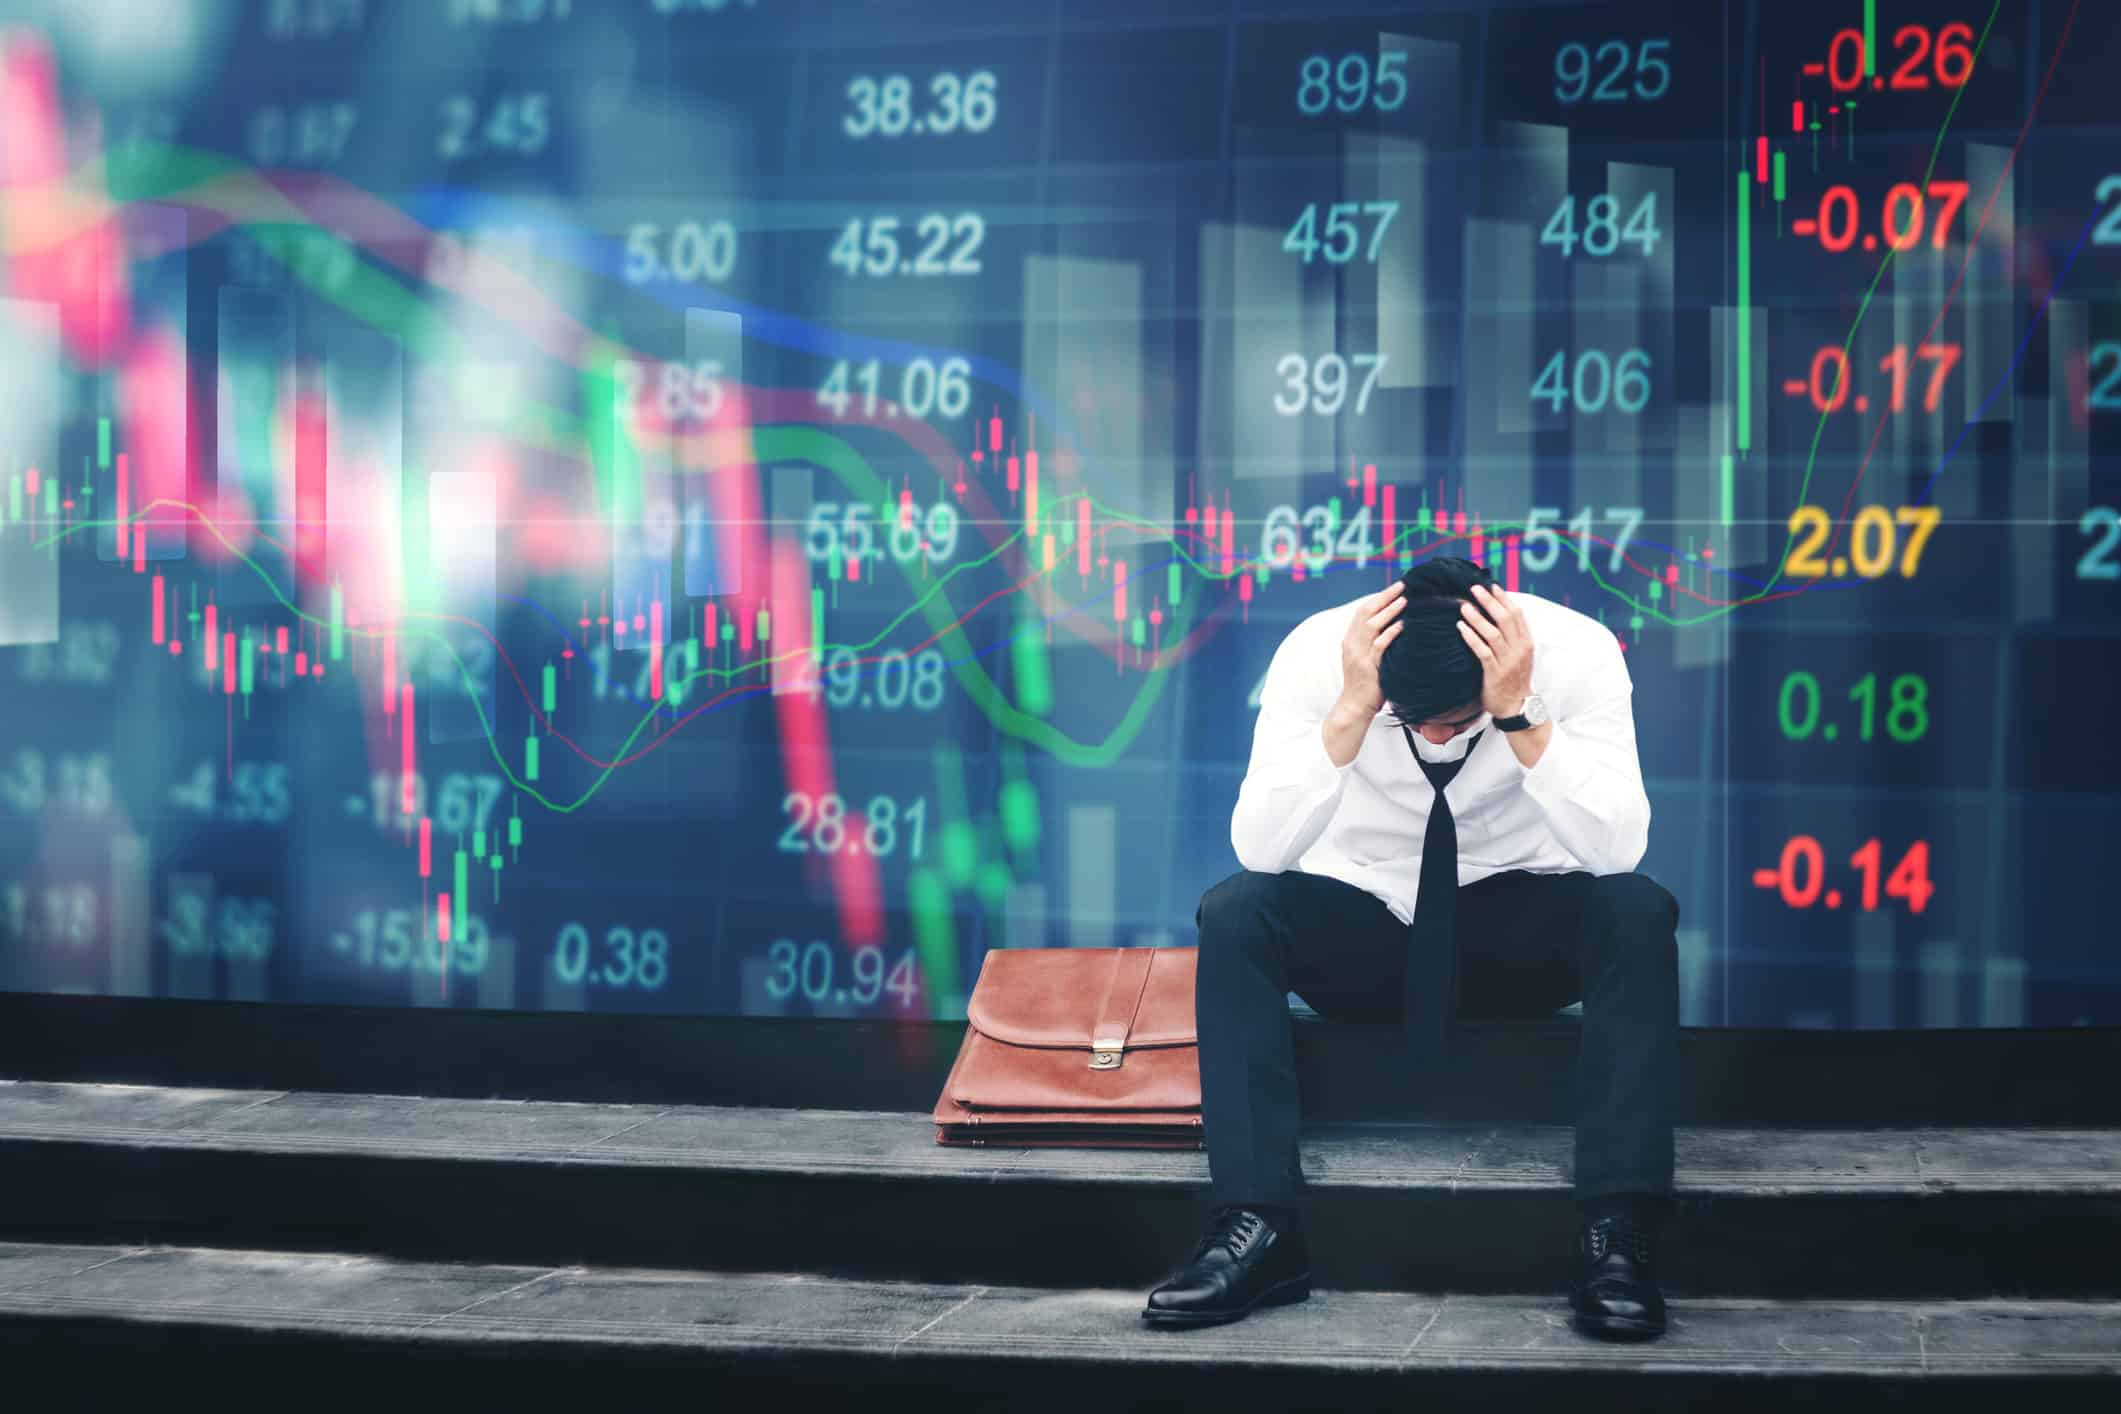 Stressed businessman sitting on the walkway in panic digital stock market financial background.